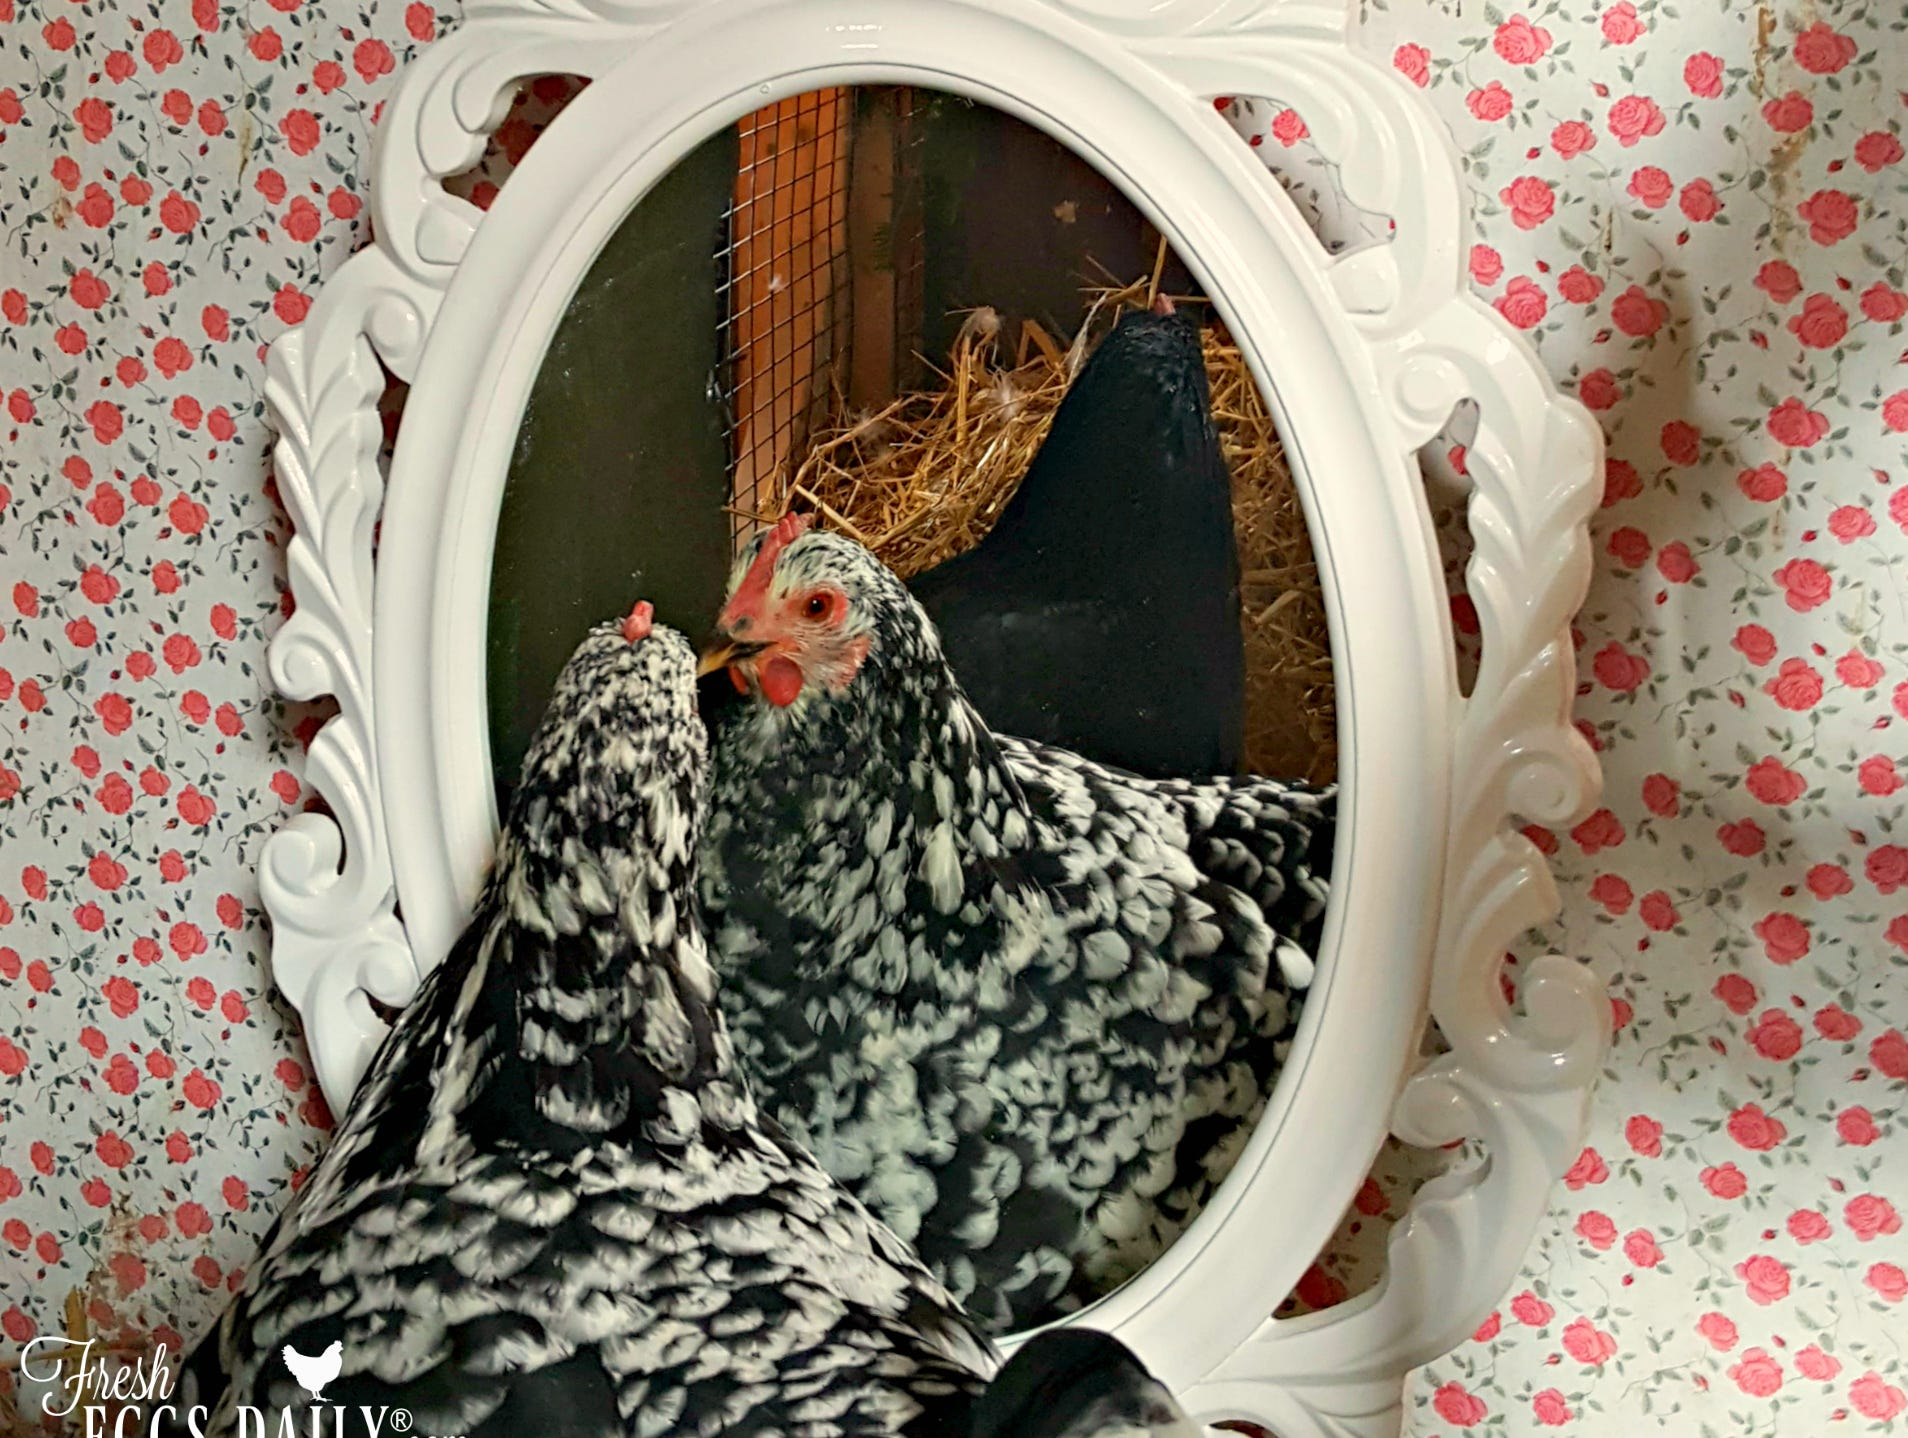 Fresh Eggs Daily's Lisa Steele has decorated the inside of her chicken coop with flowery wallpaper and a painted mirror.